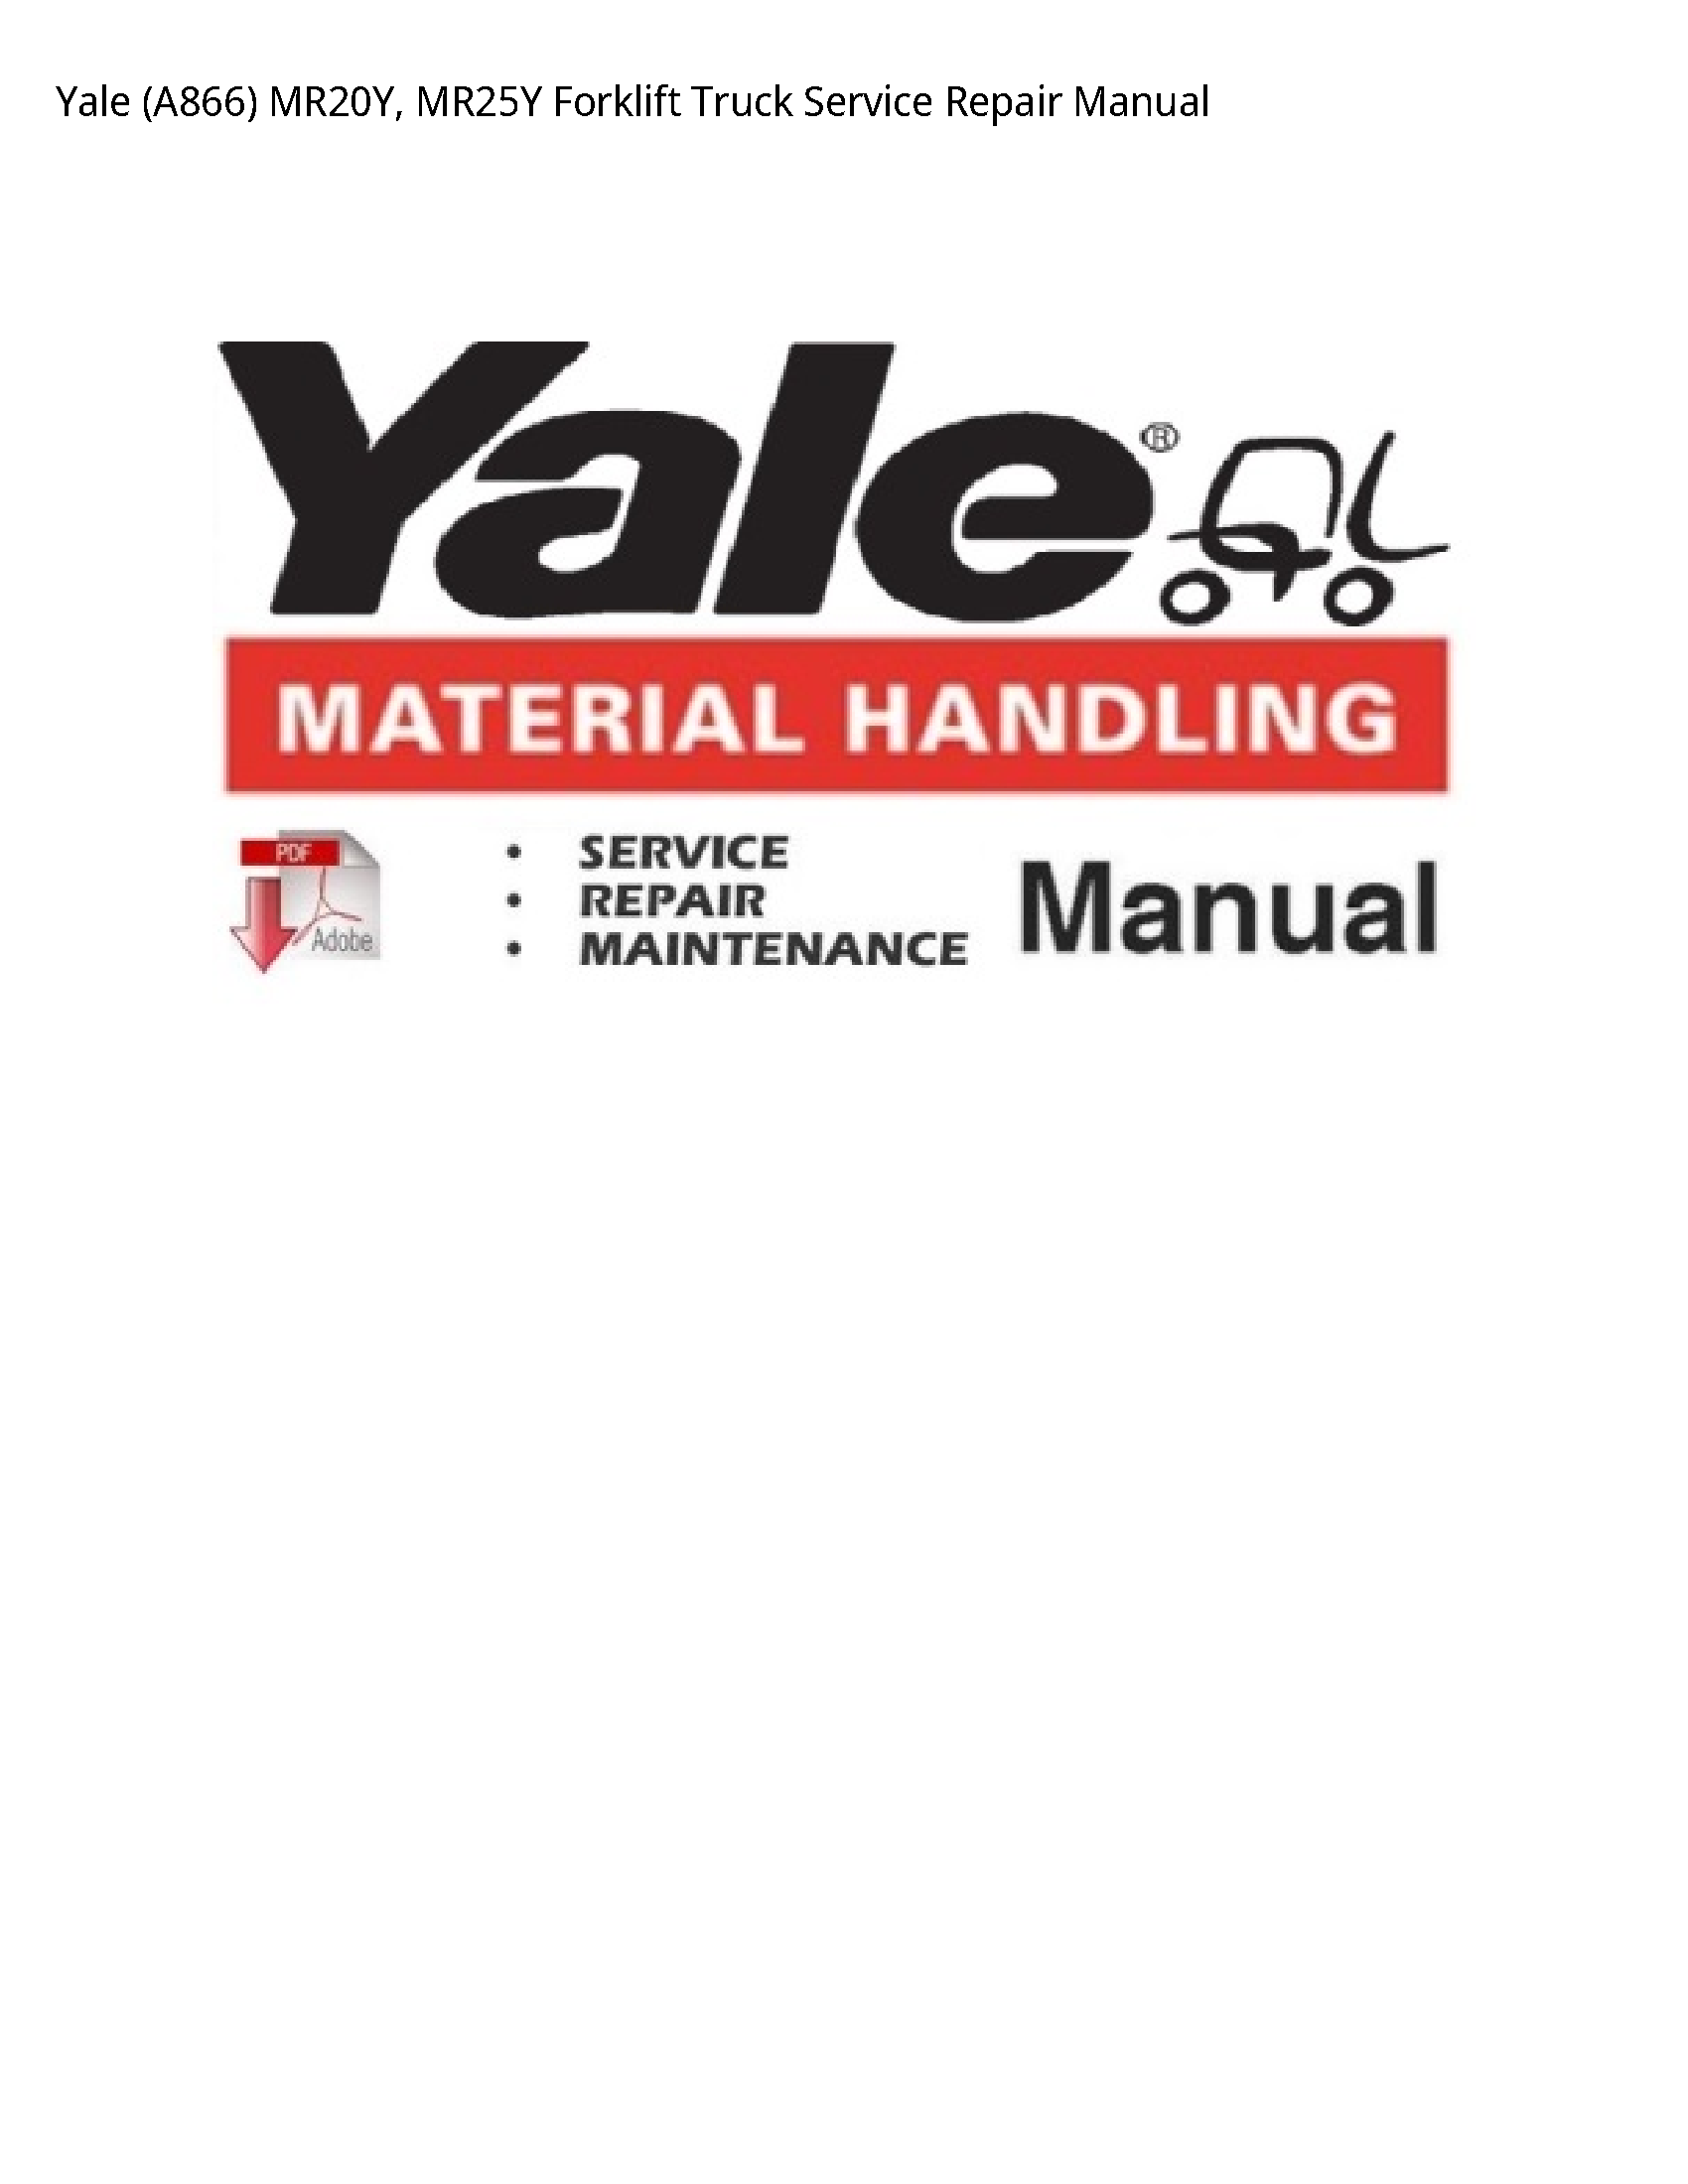 Yale (A866) Forklift Truck manual